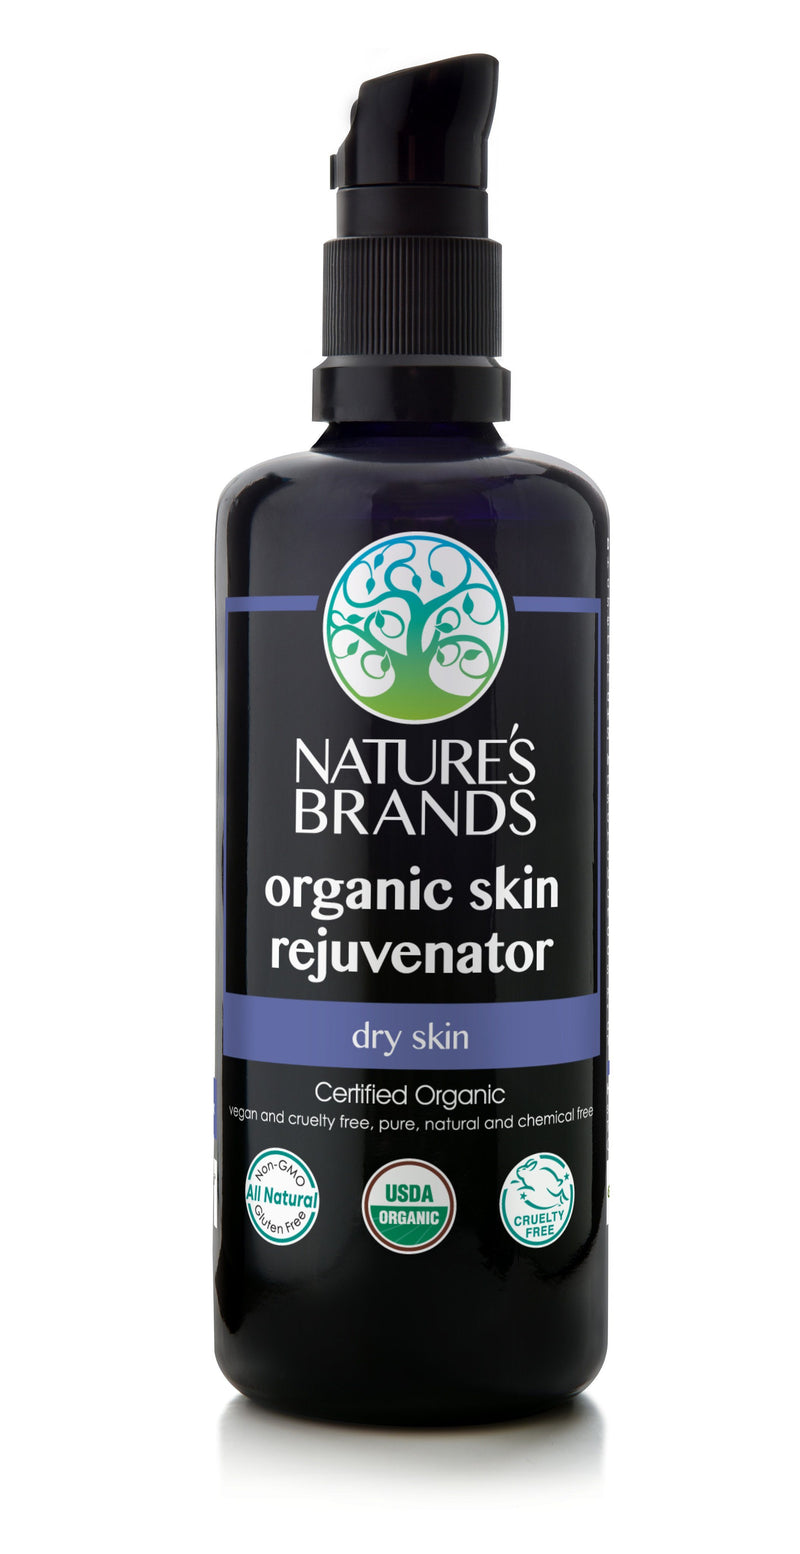 Herbal Choice Mari Organic Skin Rejuvenator - Herbal Choice Mari Organic Skin Rejuvenator - Herbal Choice Mari Organic Skin Rejuvenator